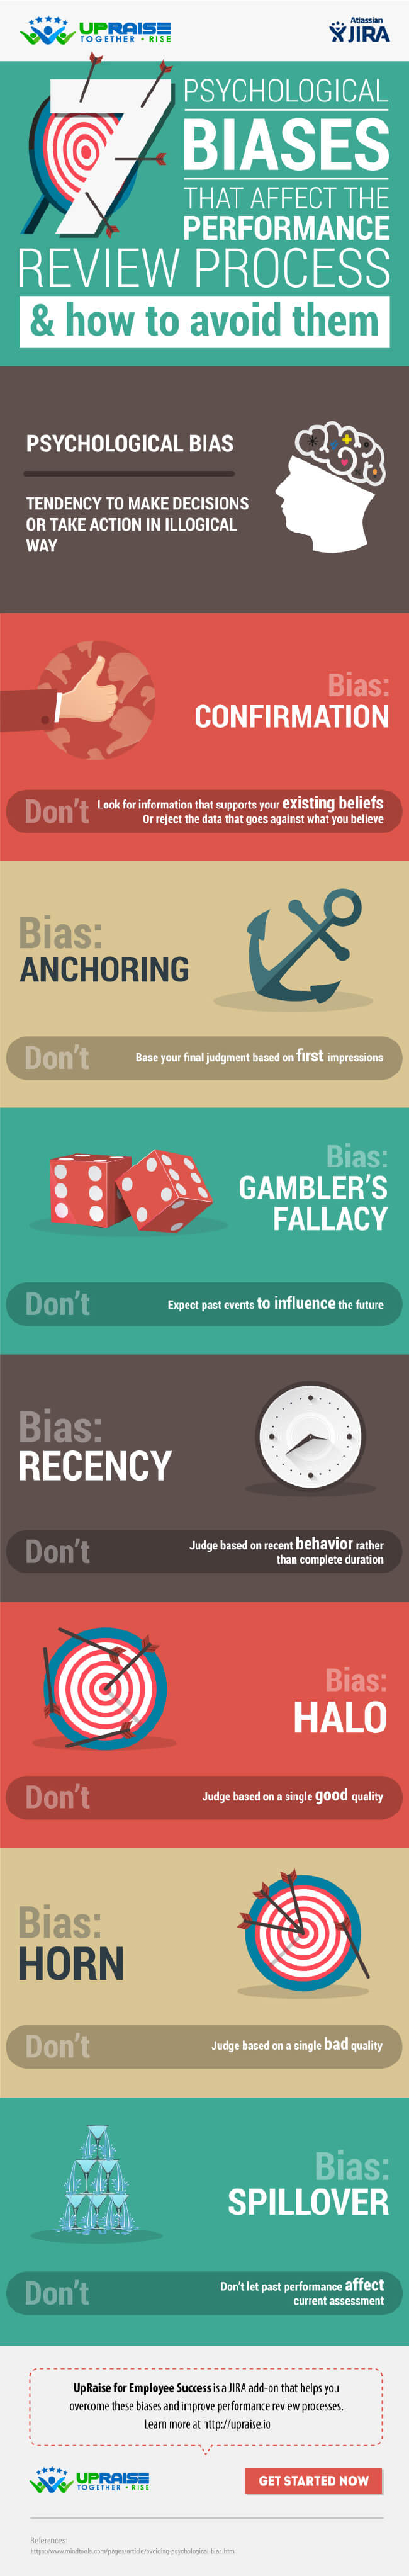 Image titled how to avoid 7 psychological biases that affect the performance review